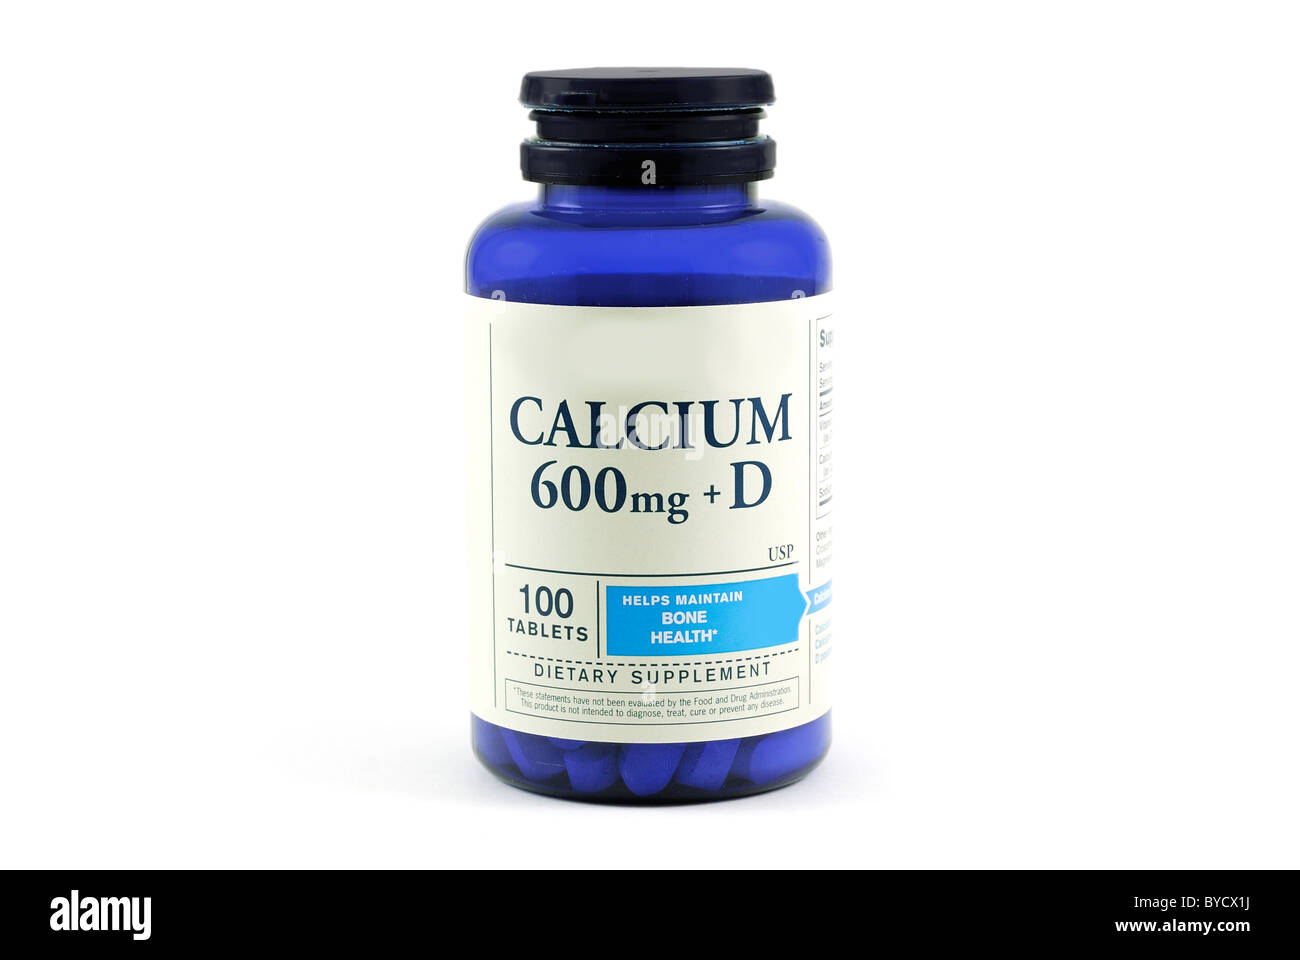 A bottle of generic Calcium with Vitamin D used for bone health isolated on a white background. - Stock Image